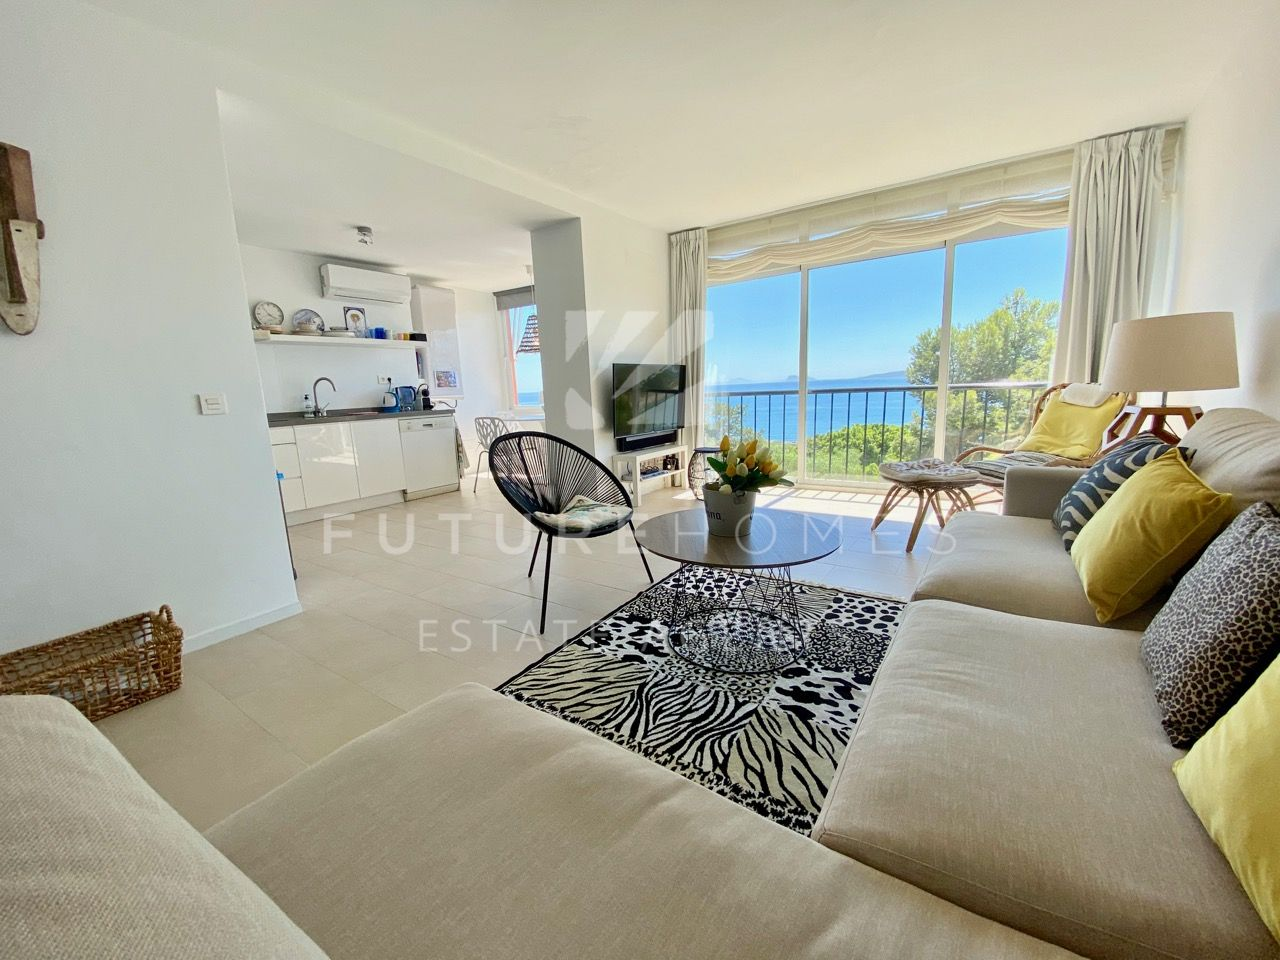 Estepona port - immaculate 3 bedroom apartment with fantastic sea views!